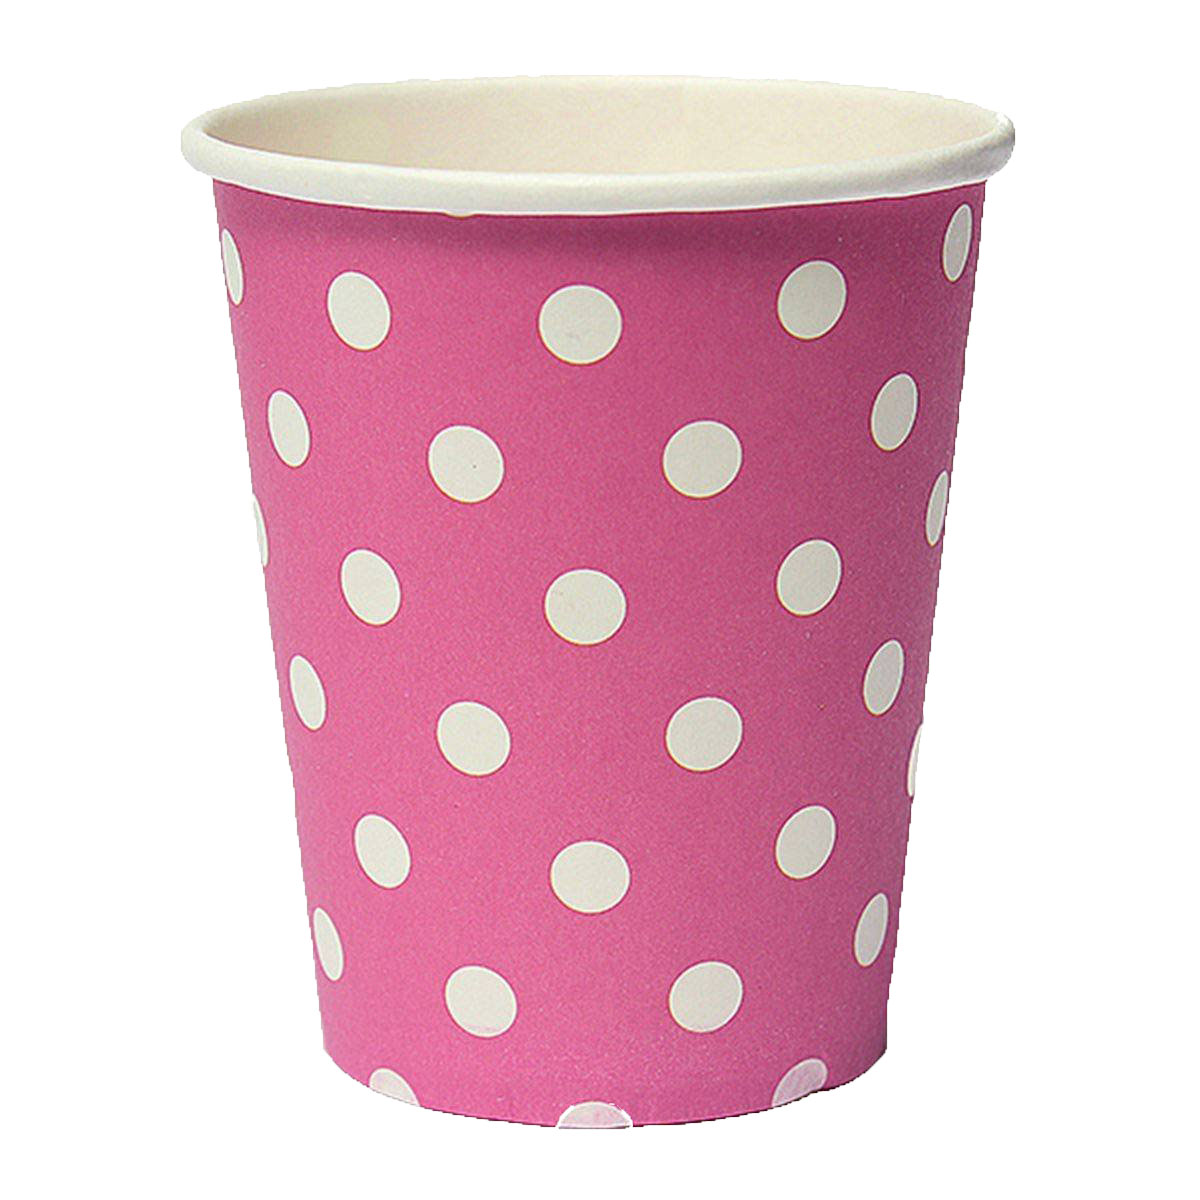 THZY 50pcs Polka Dot Paper Paper Cups Case Disposable Tableware Wedding Birthday Decorations Pink